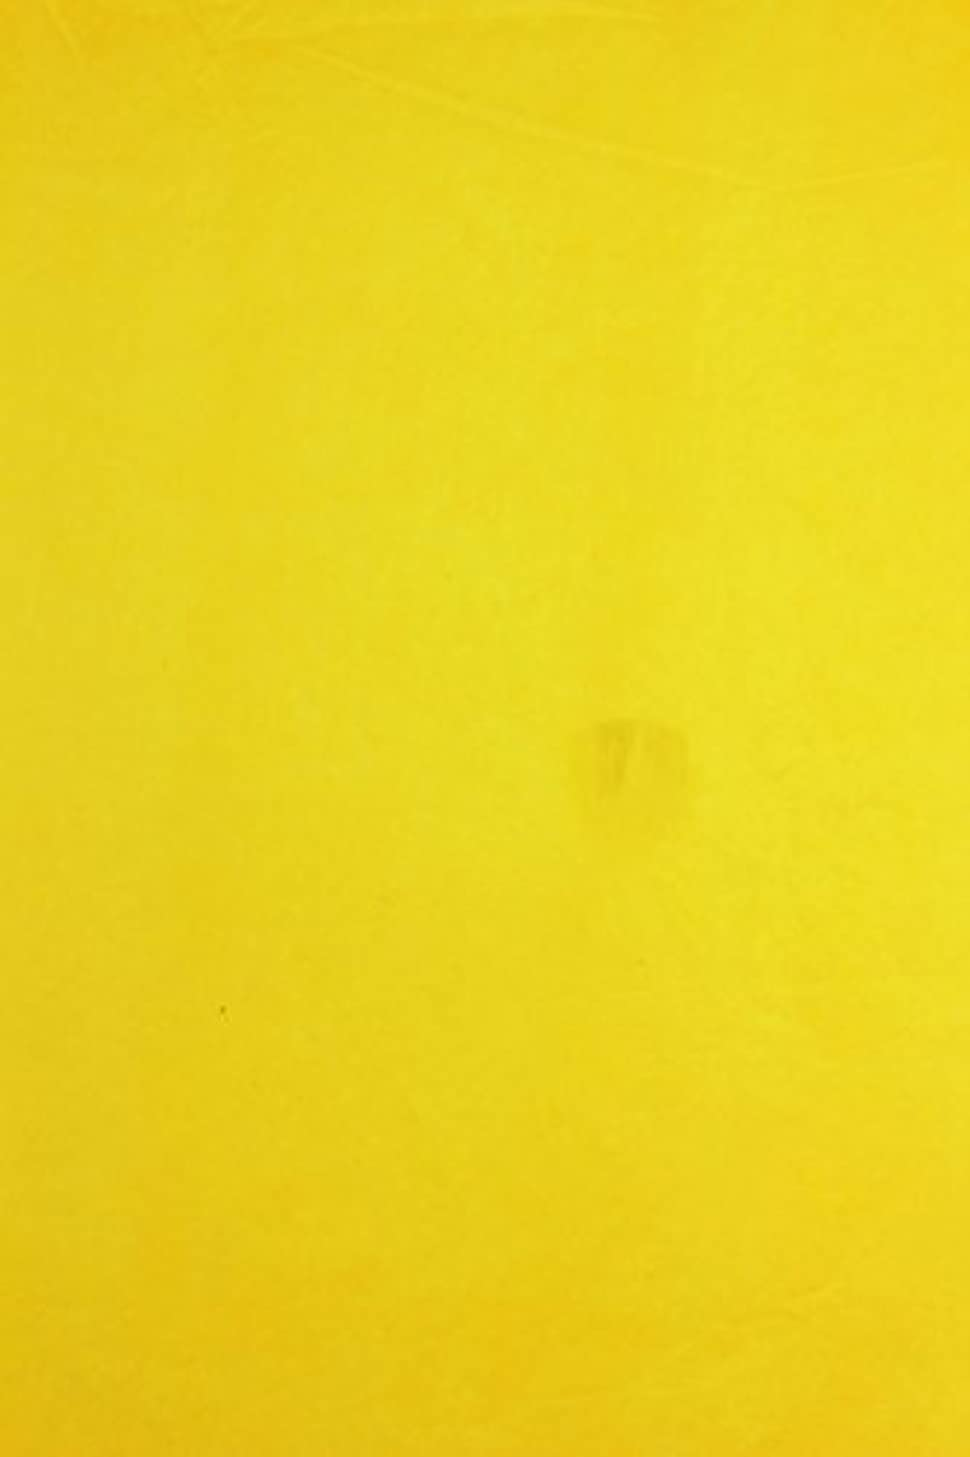 Clairefontaine Tissue Paper (8 Shts) 50Cmx75Cm Gold Yellow